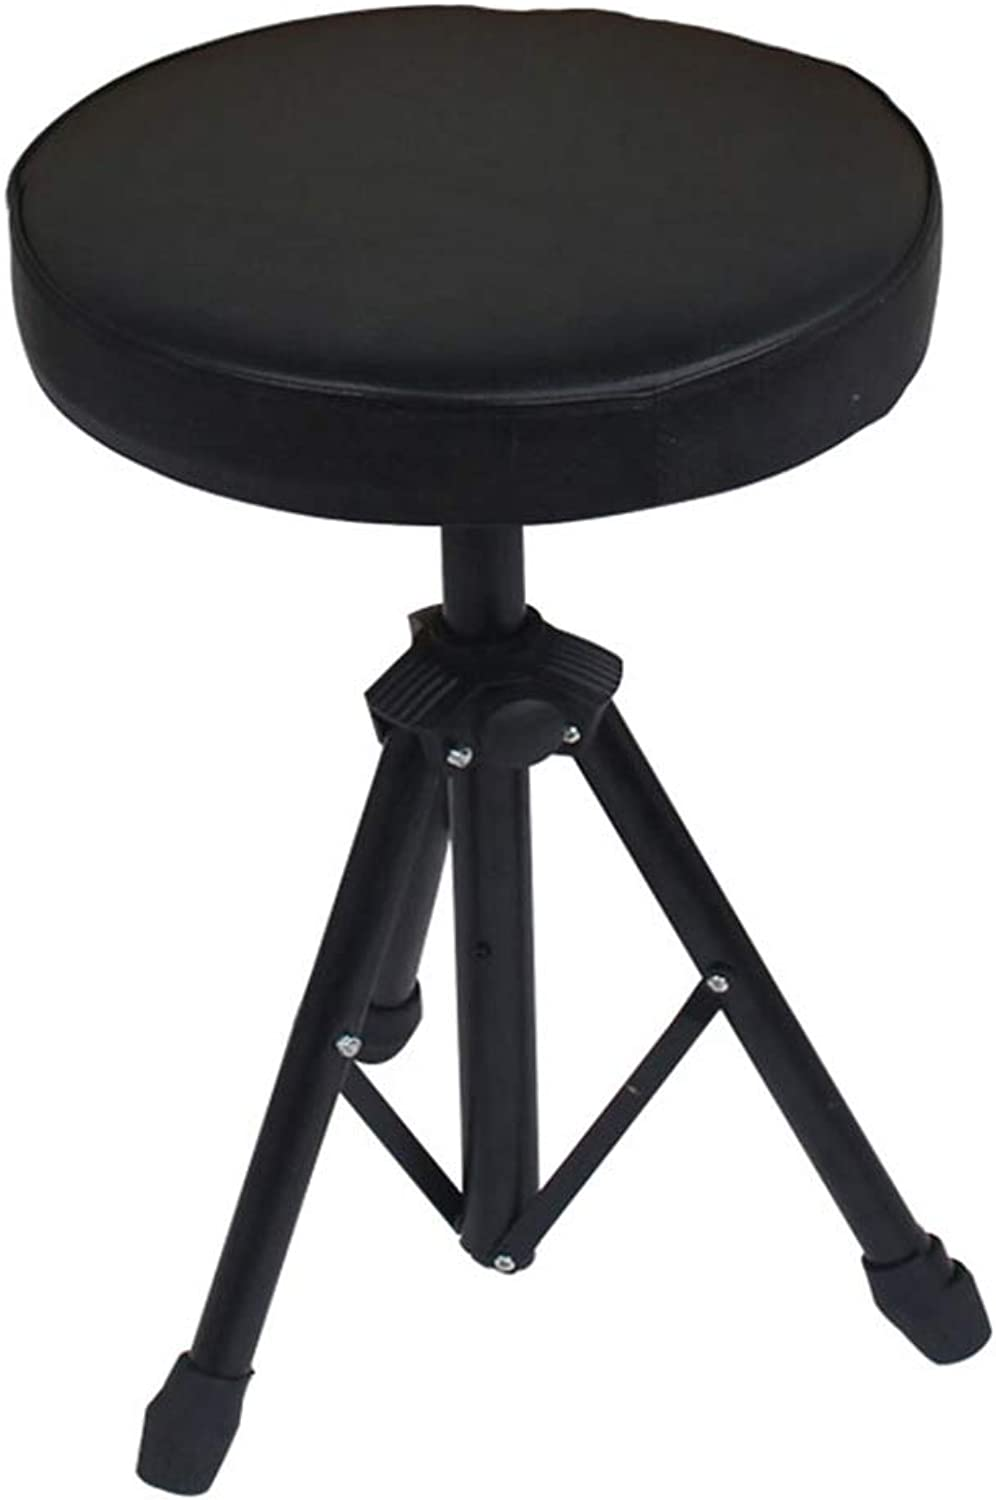 Folding Stool Folding Step Mazza Portable Stool Mazar shoes Stool Footstool Step Stool Adjustable Foot Rest Collapsible Round Piano Jazz Musical Instrument GAOFENG (color   Black)